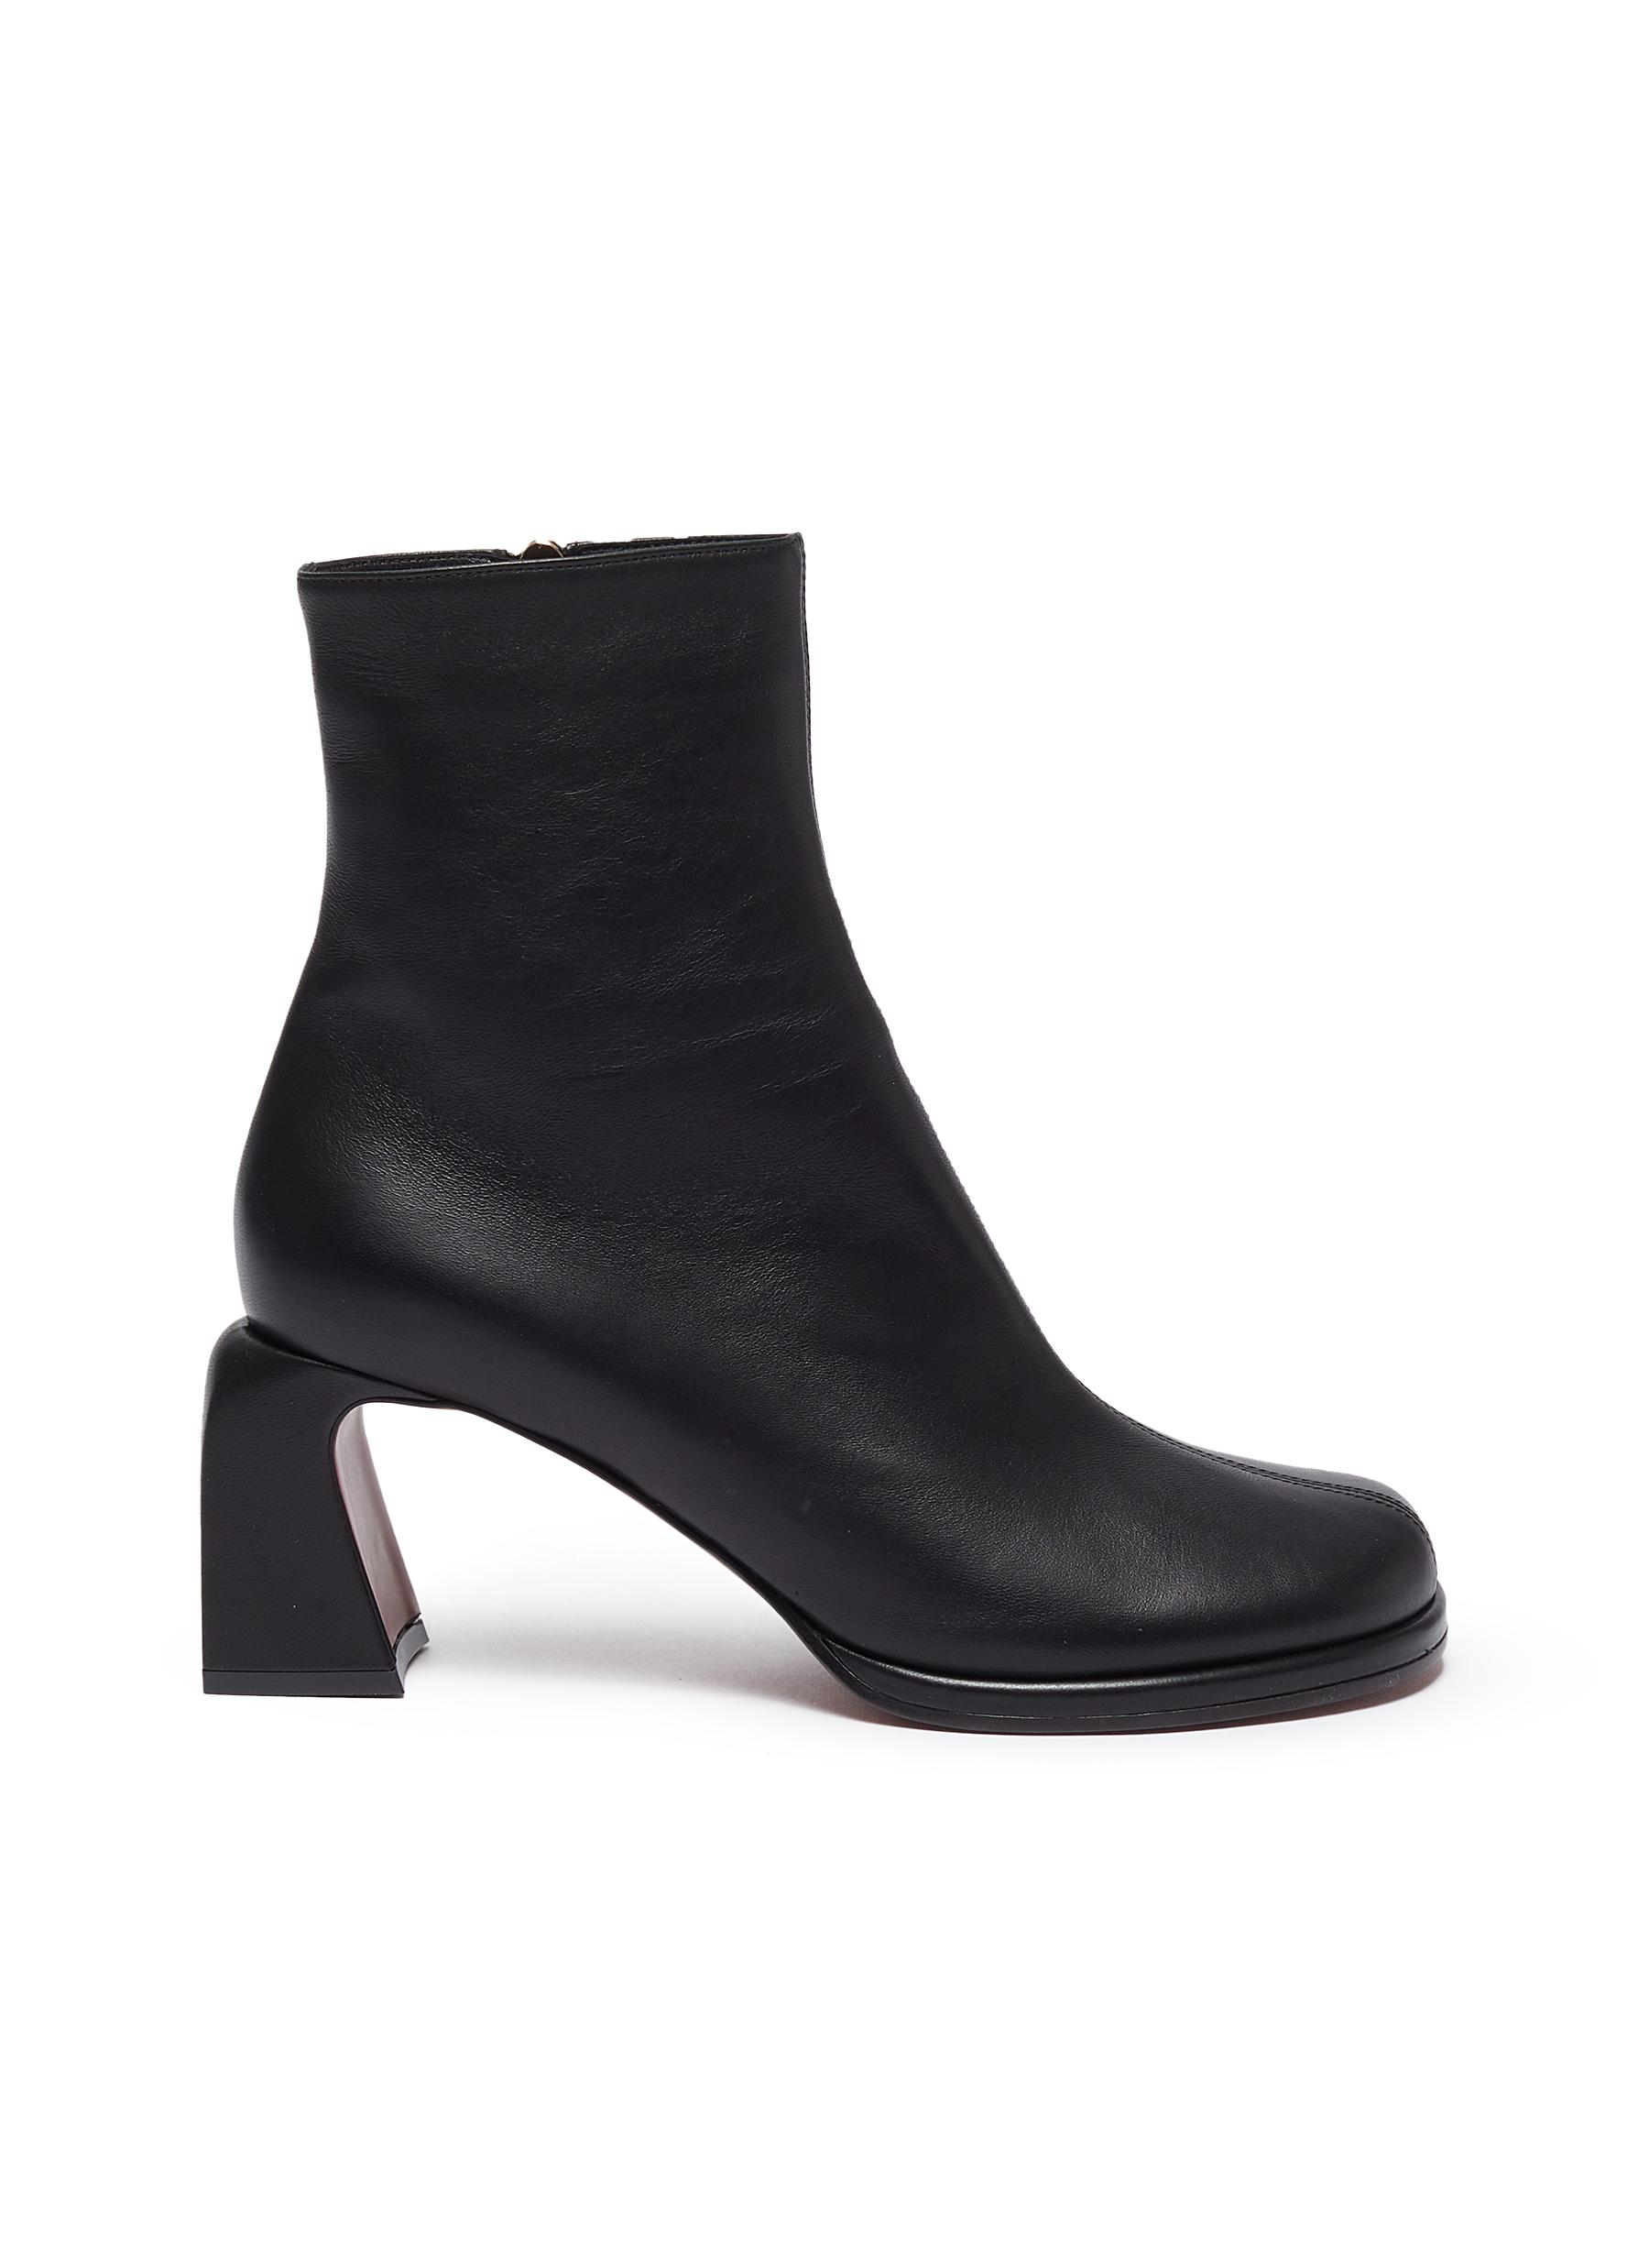 shop Manu Atelier 'Chae' Leather Ankle Boots online